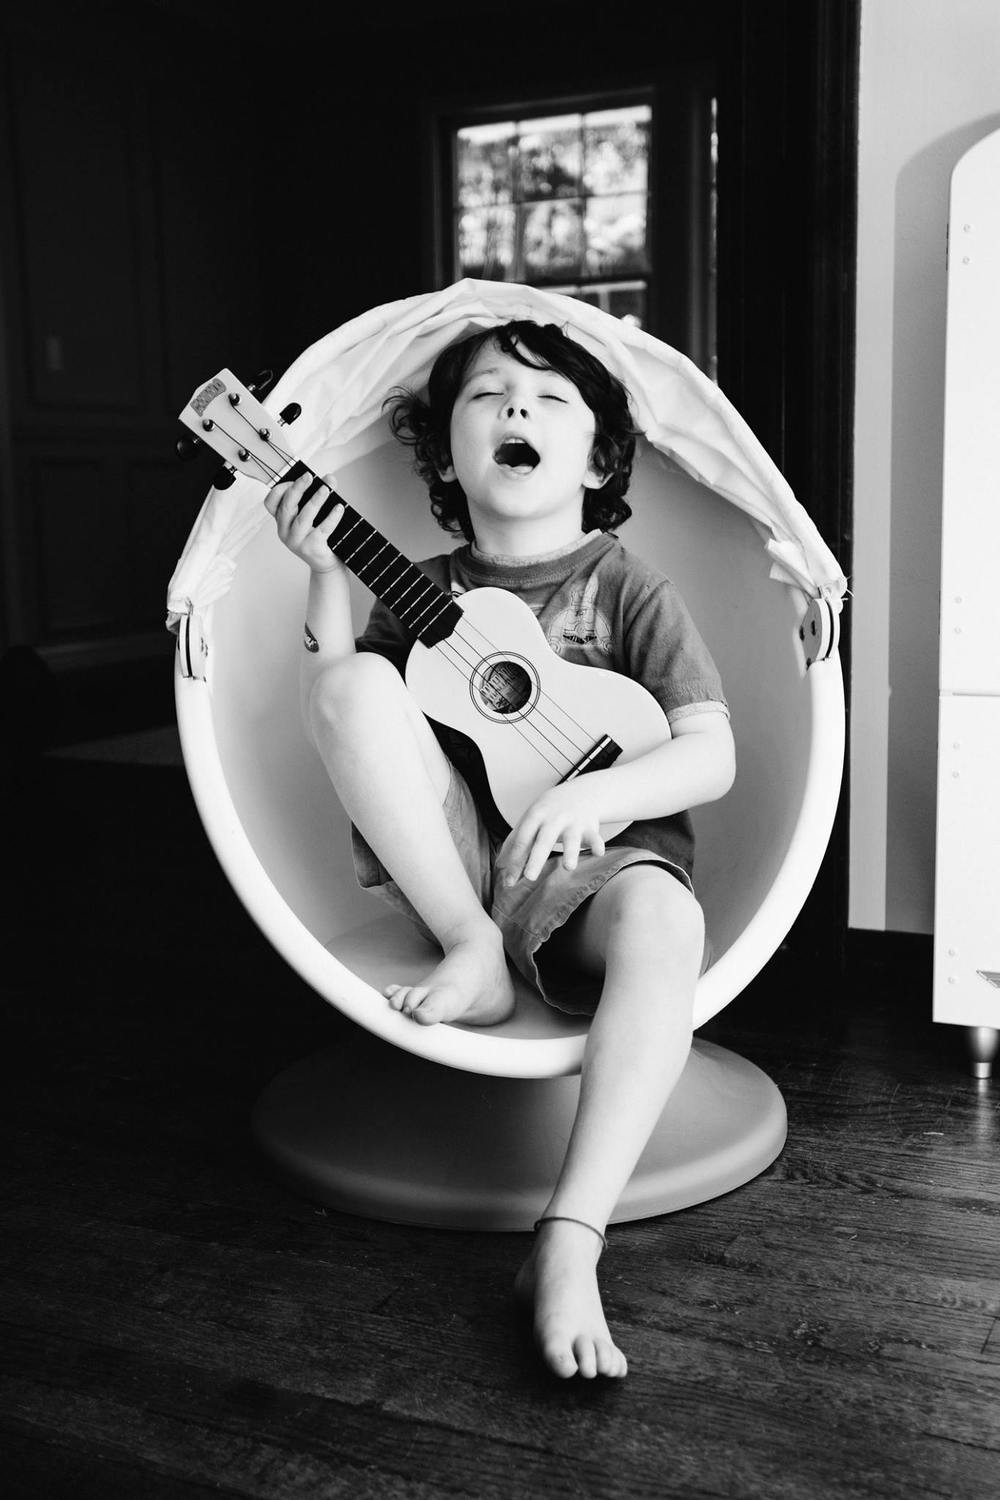 egg chair/ukelele | Jennifer Tippett Photography